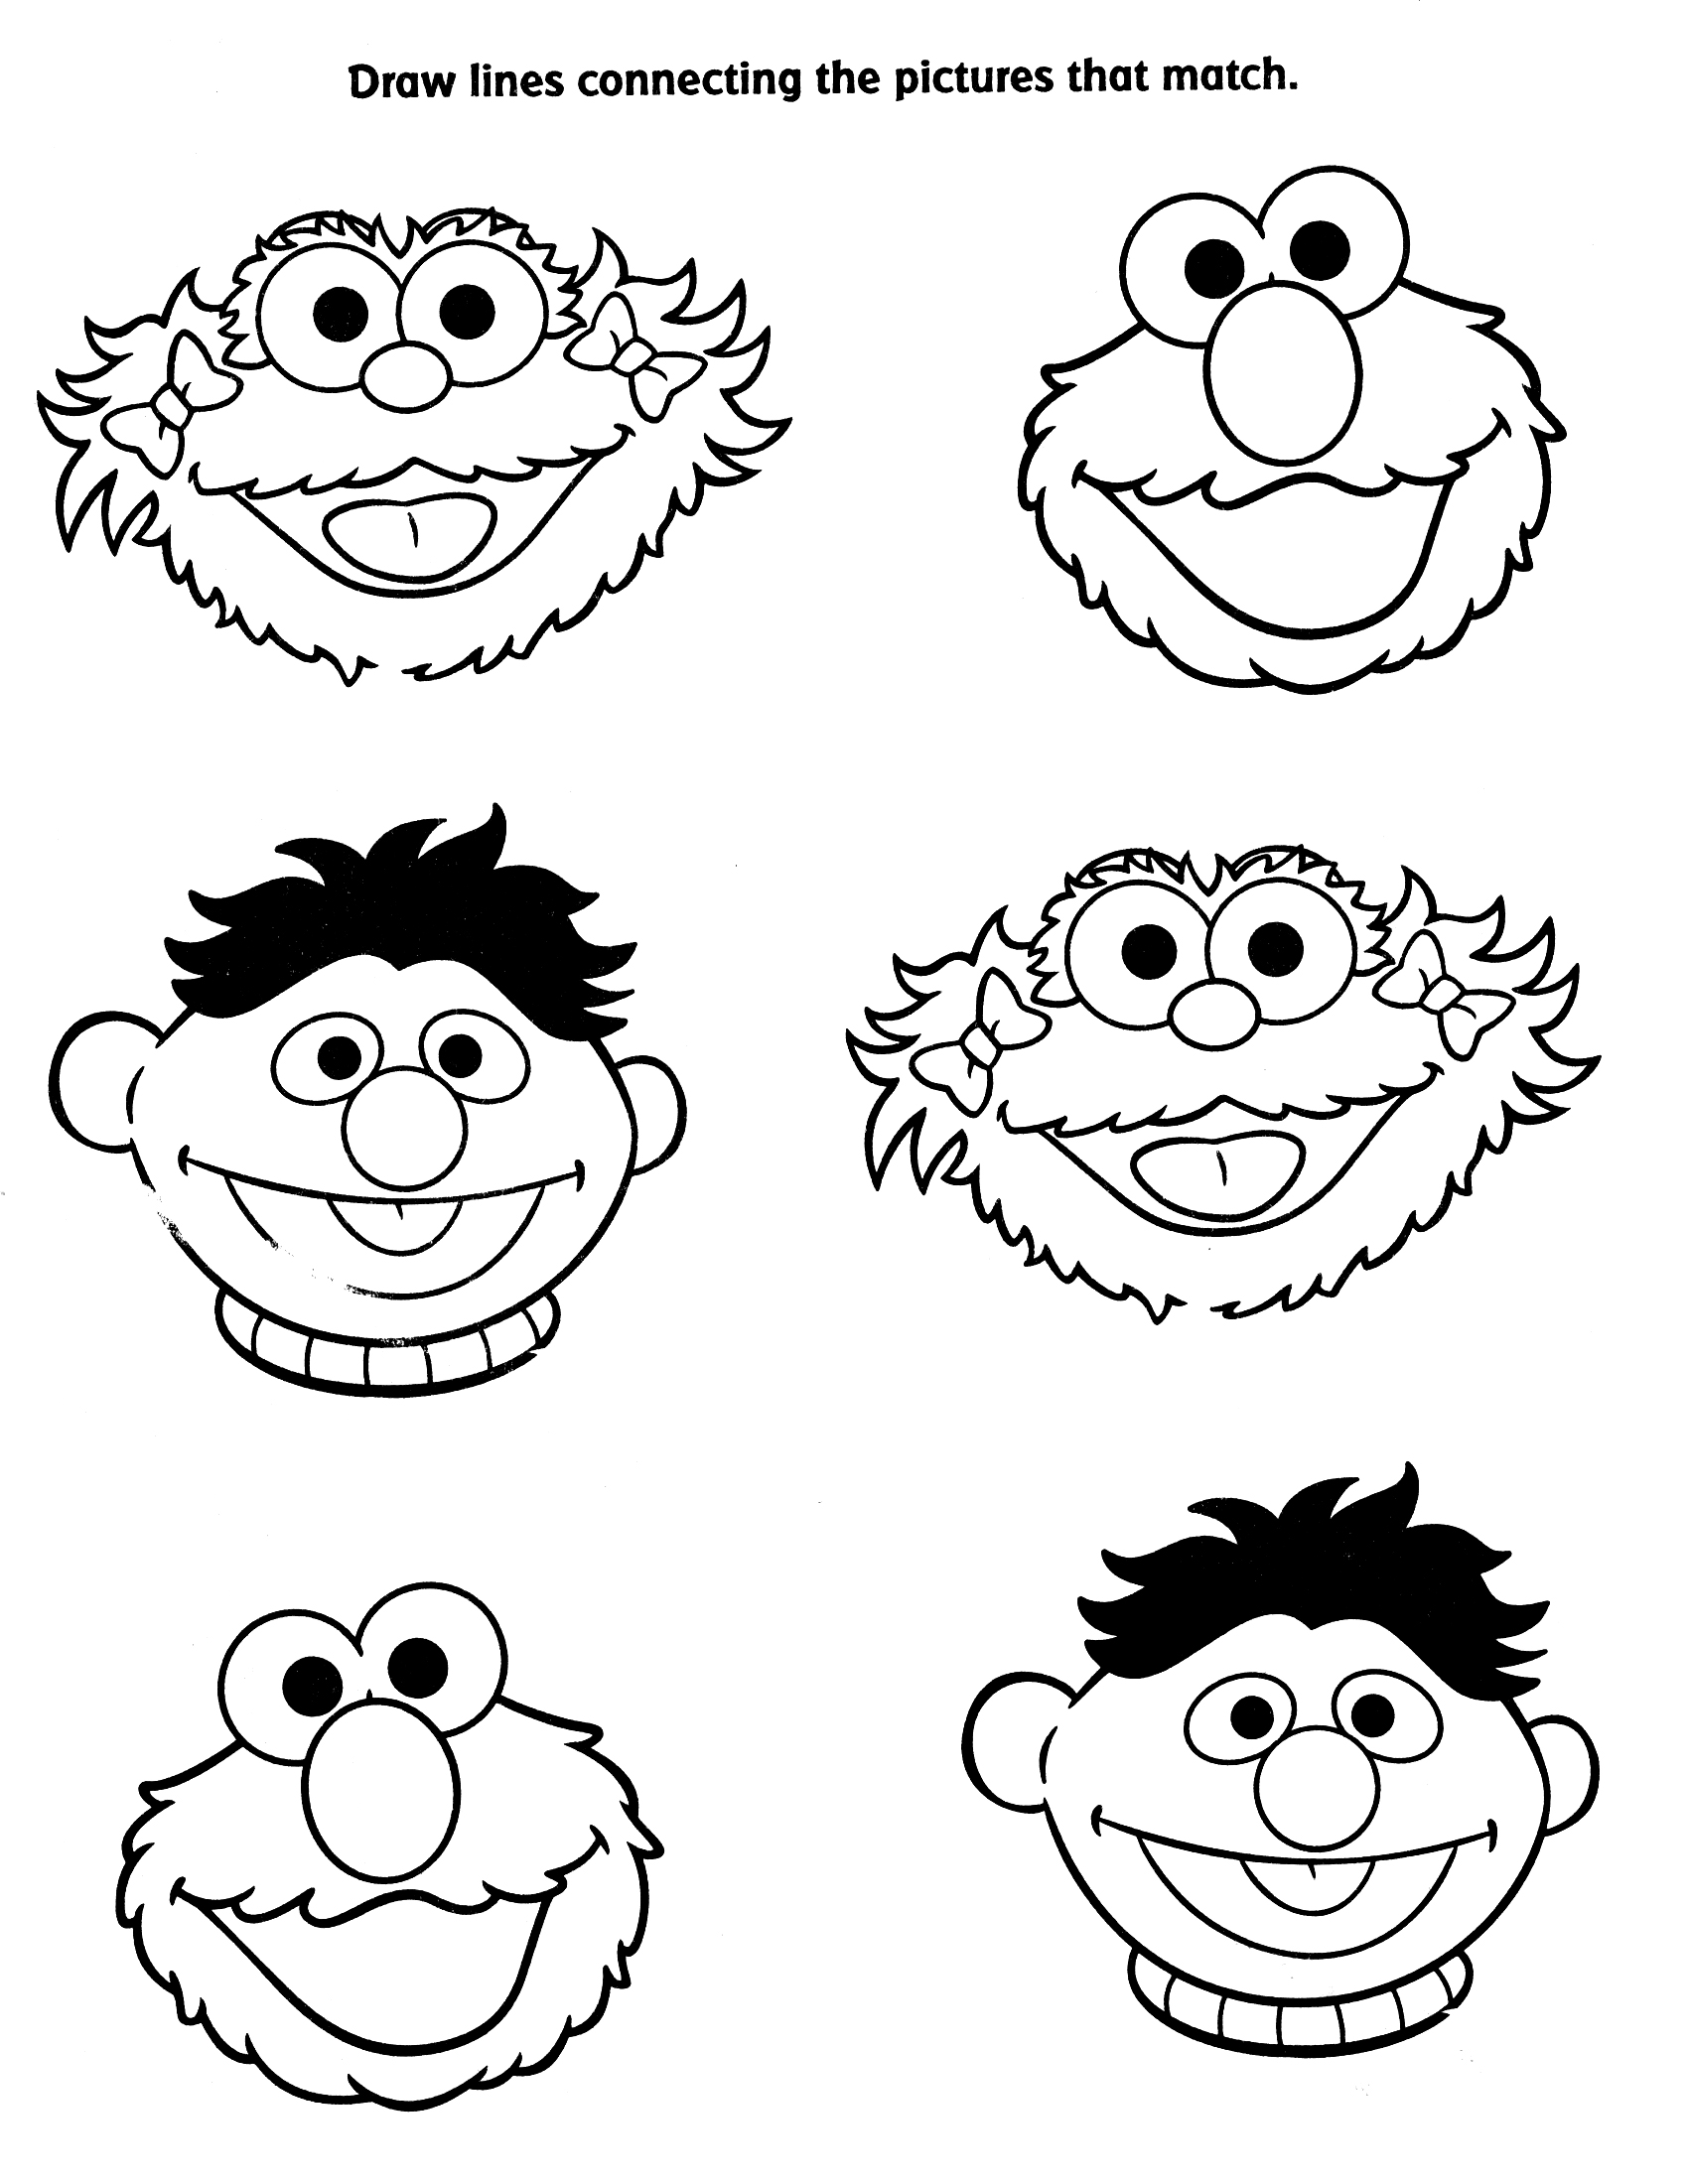 how to draw elmo easy how to draw elmo easy elmo easy how to draw